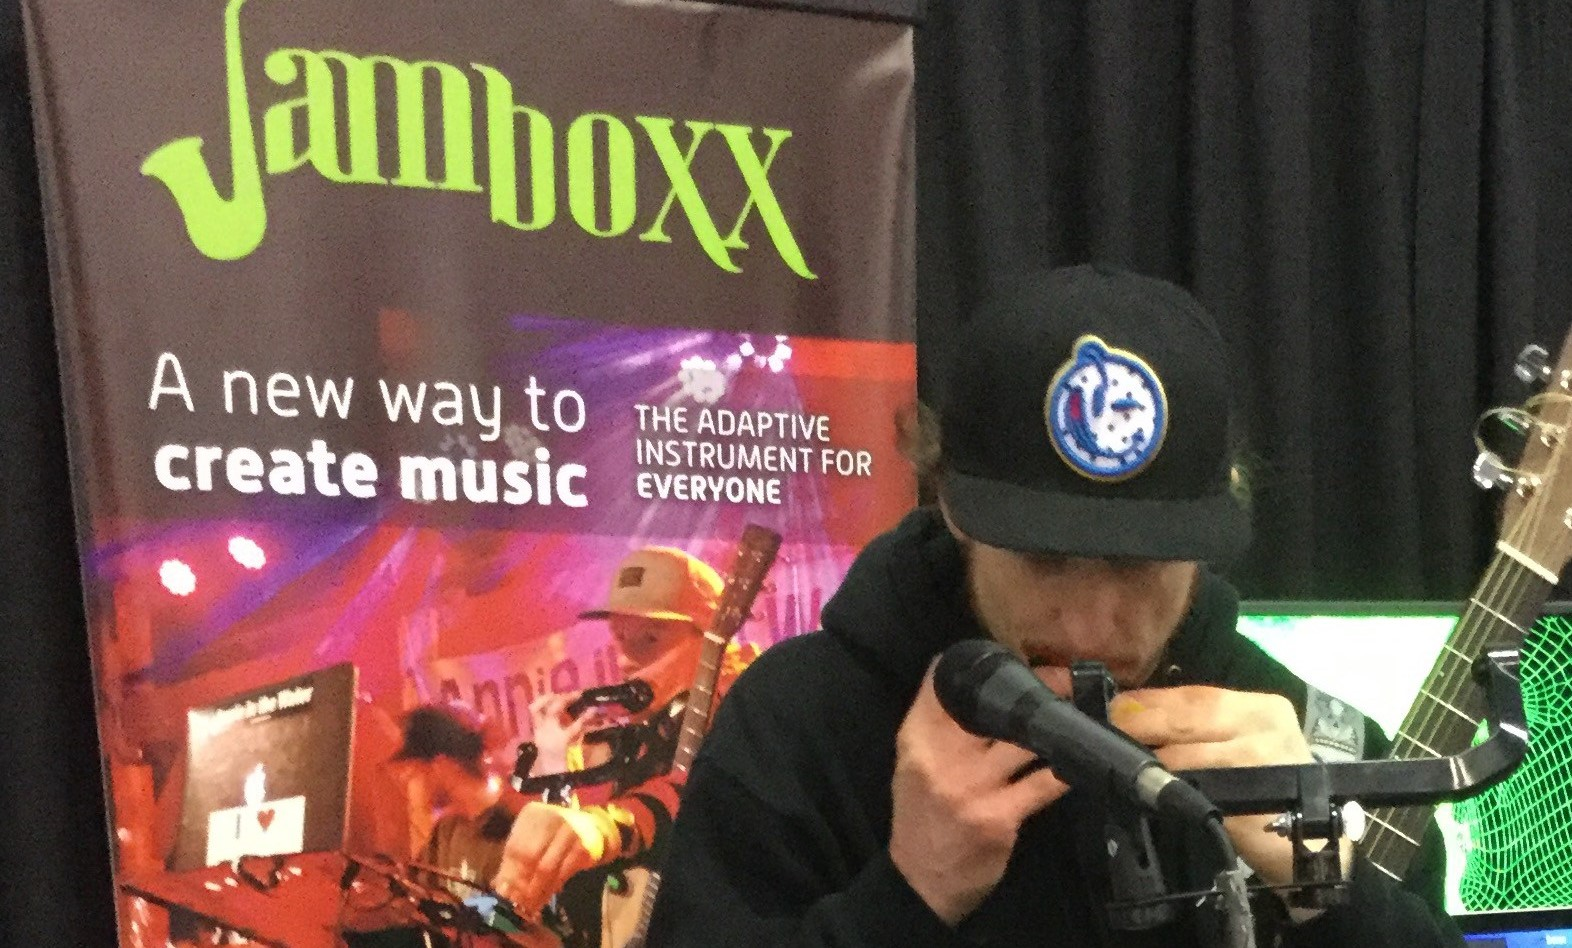 Brad Hester plays the Jamboxx at NAMM 2018